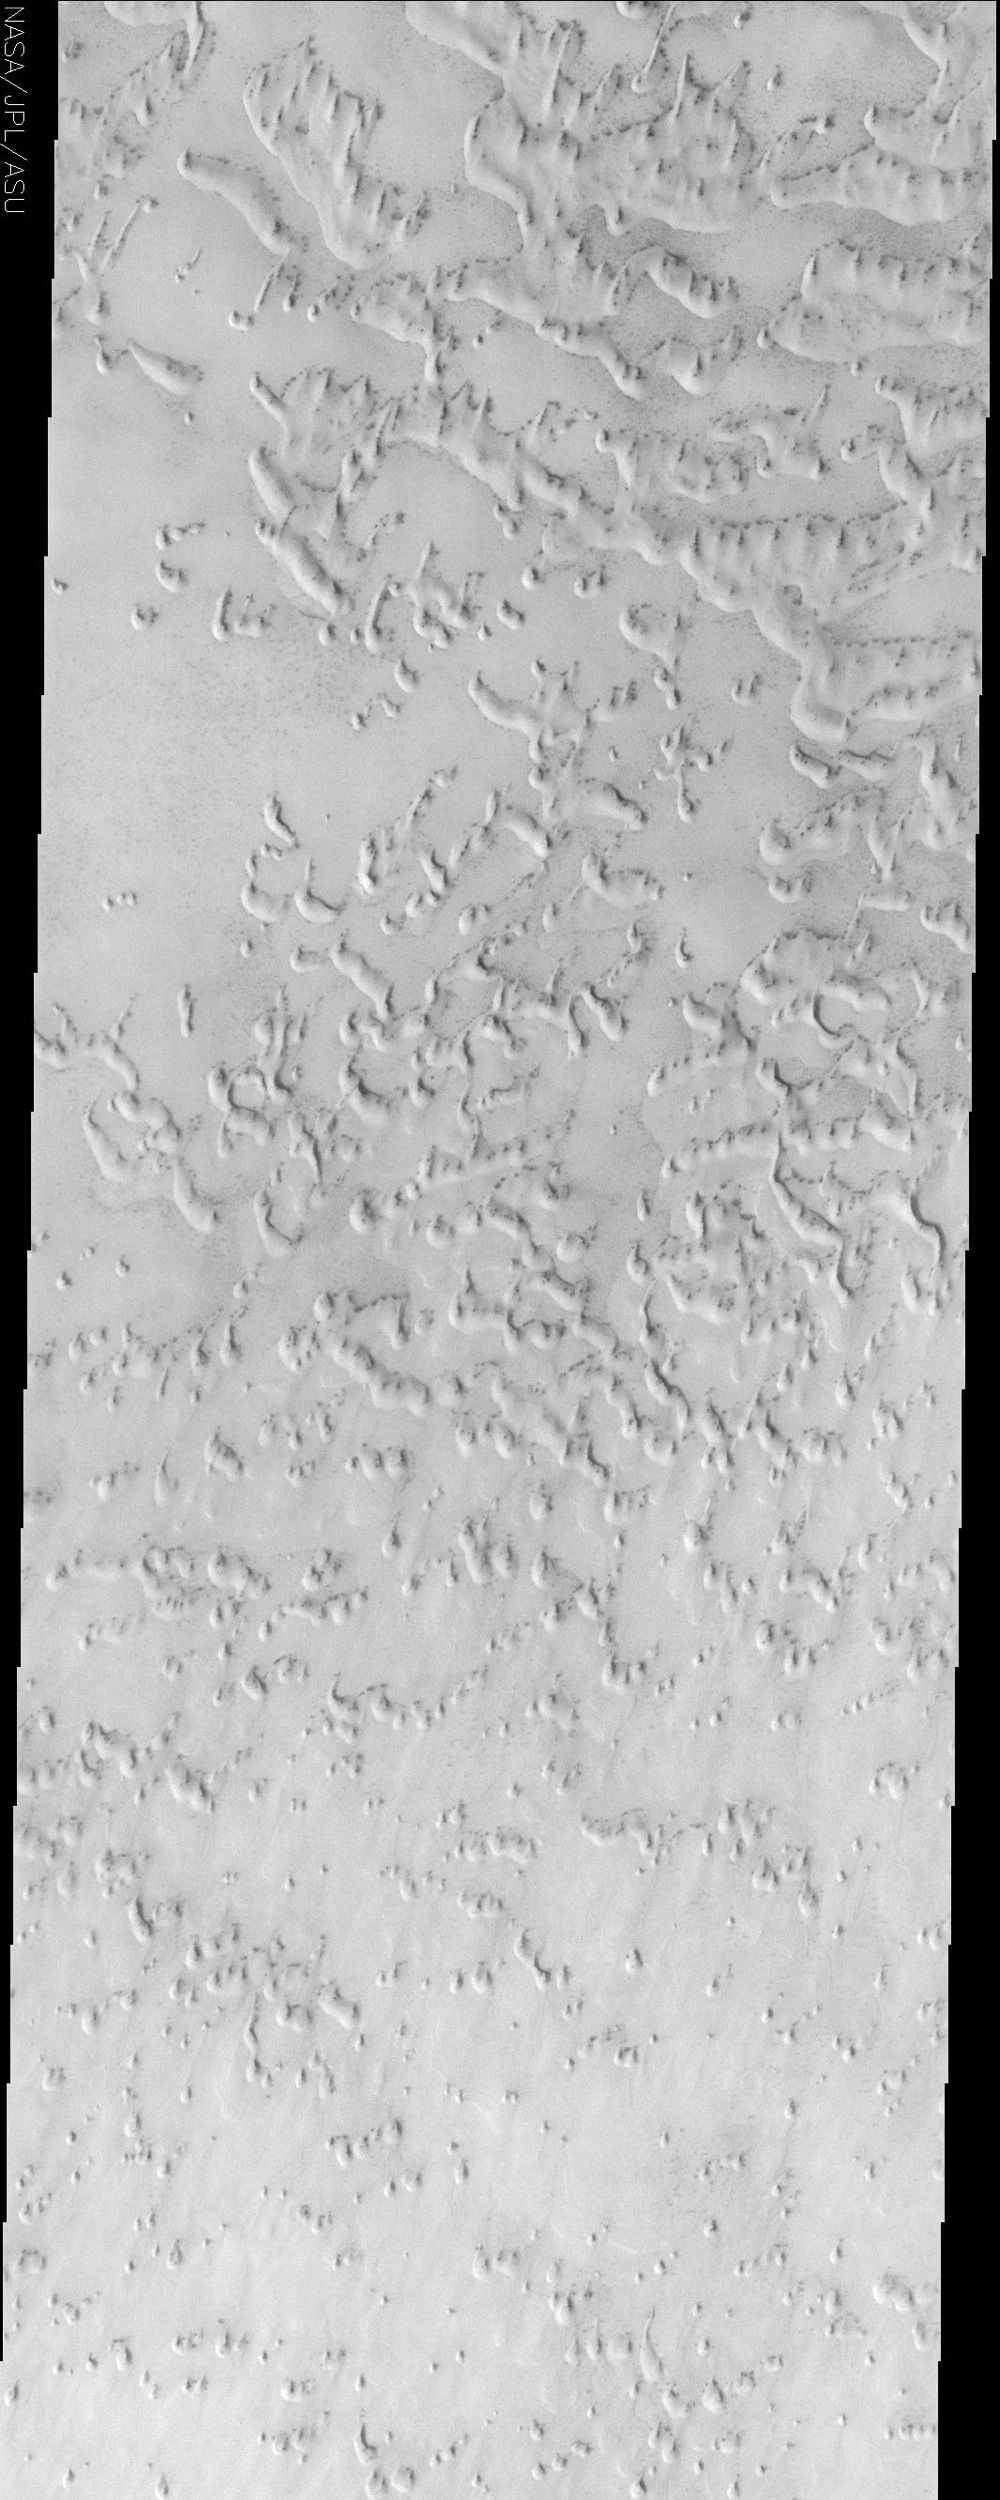 This image from NASA's Mars Odyssey spacecraft displays sand dunes covered in CO2 frost. This is a region of Mars that contains circumpolar sand seas.